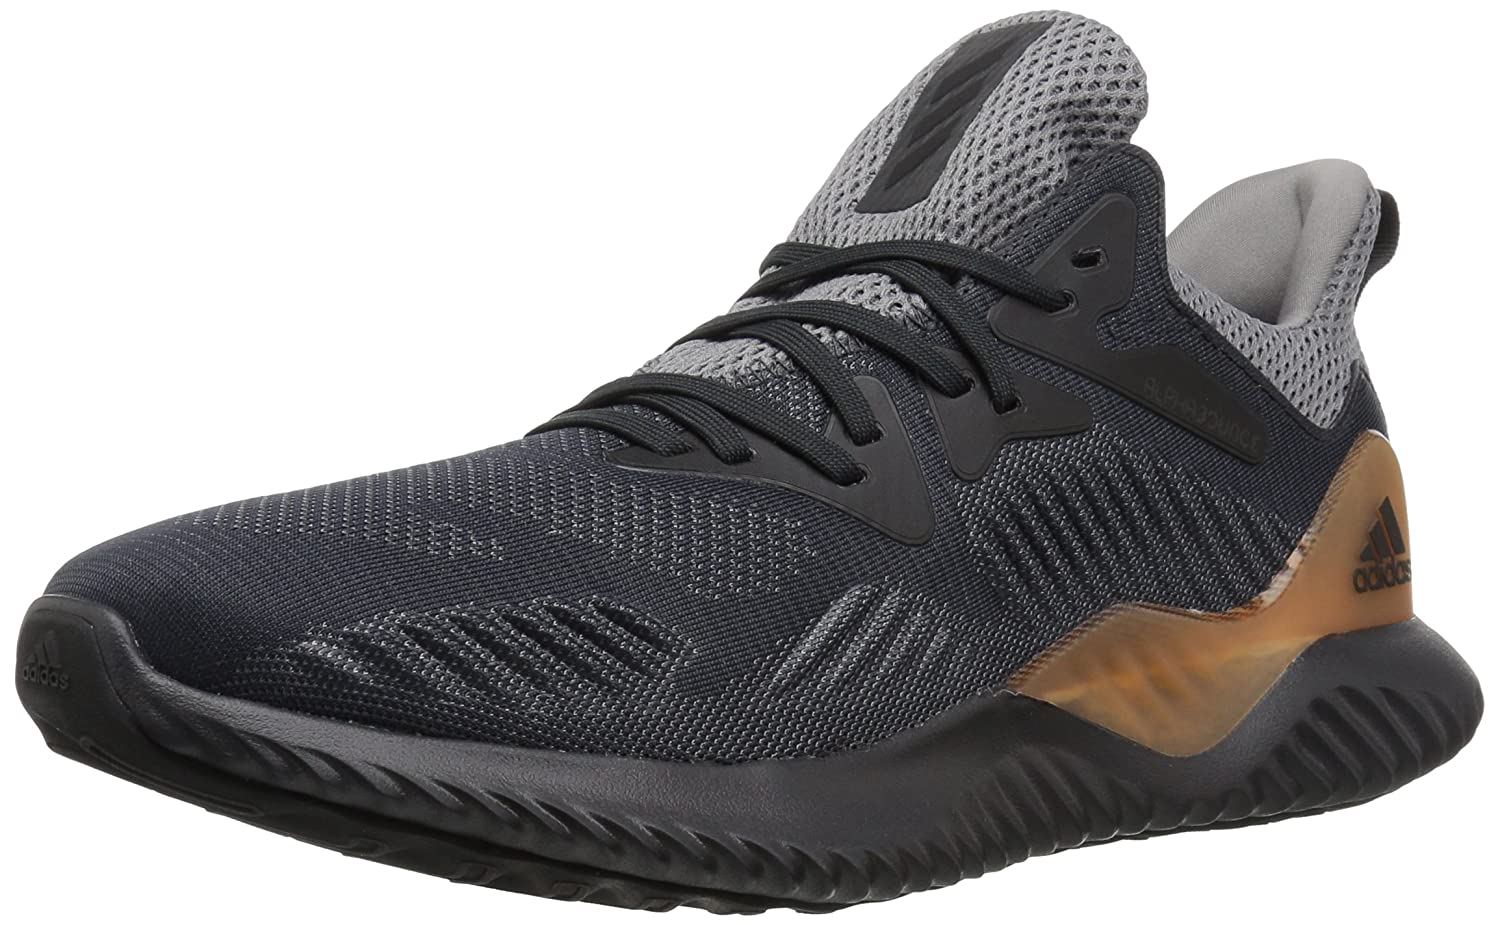 adidas Alphabounce Beyond M Running Shoe B0716X6MZZ 11.5 M US|Grey Four/Carbon/Dark Solid Grey